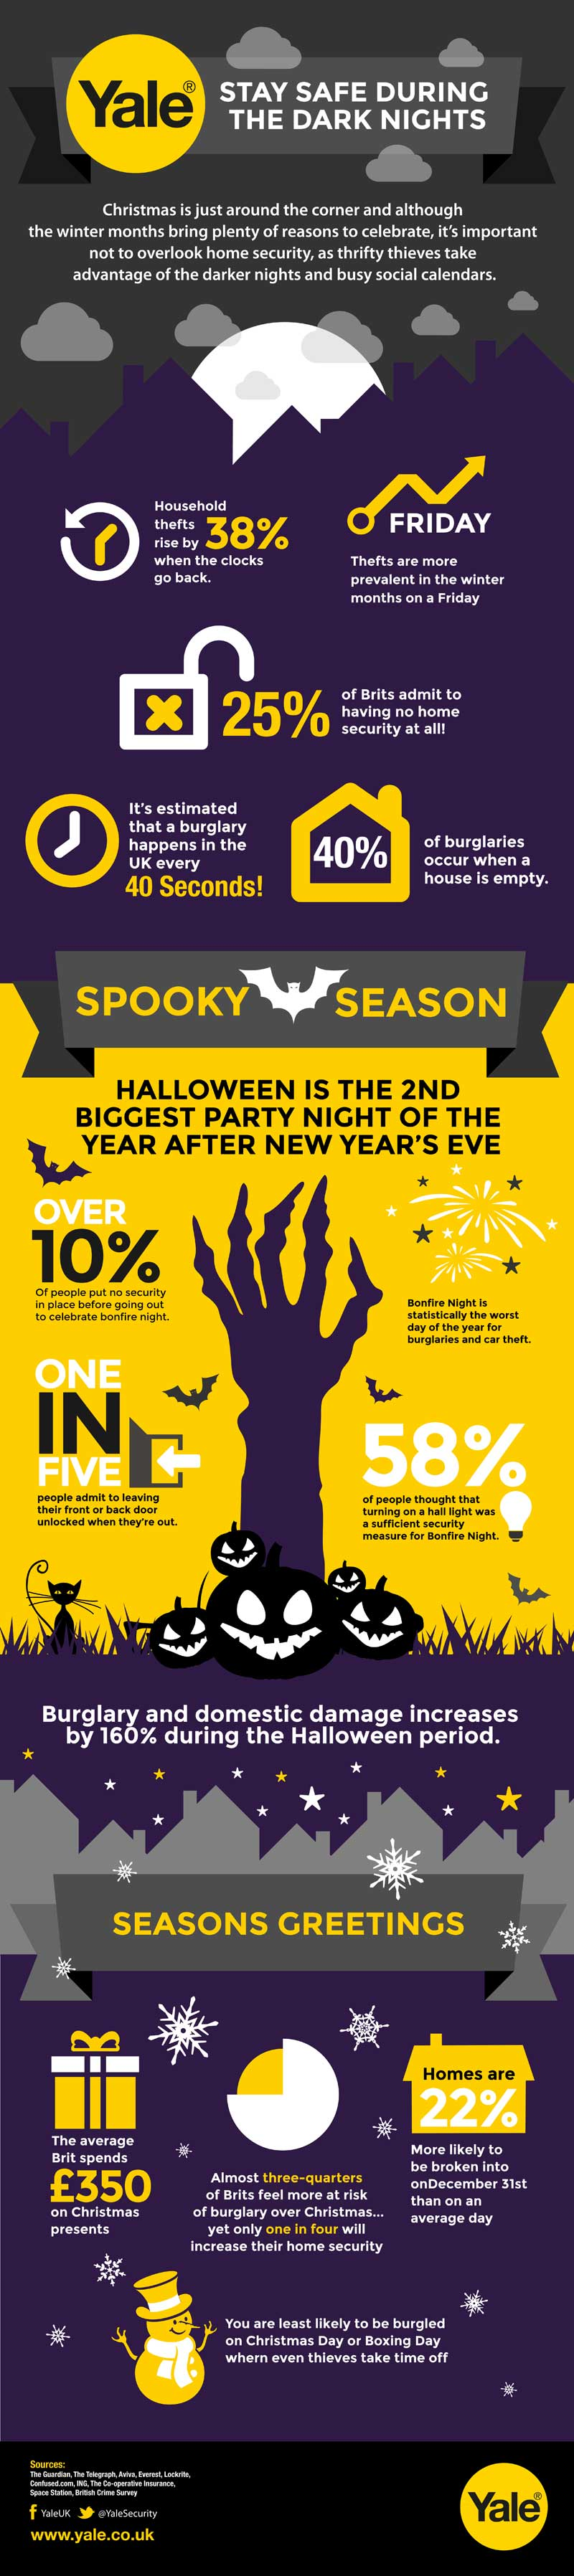 Stay Safe During The Dark Nights